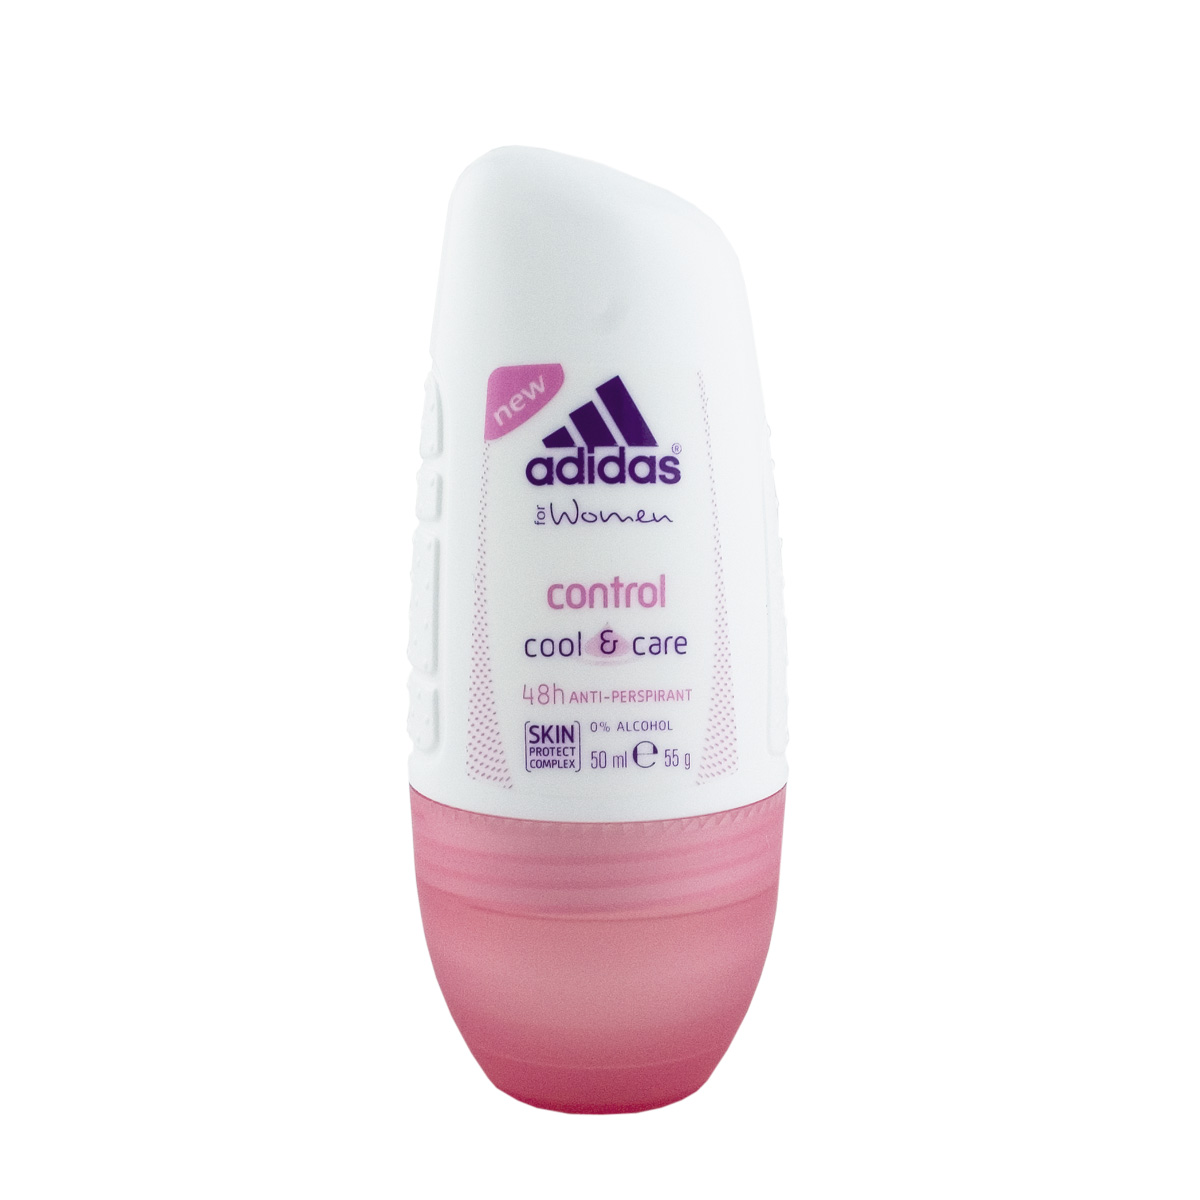 Adidas Cool and Care Control Deodorant roll-on 50 ml